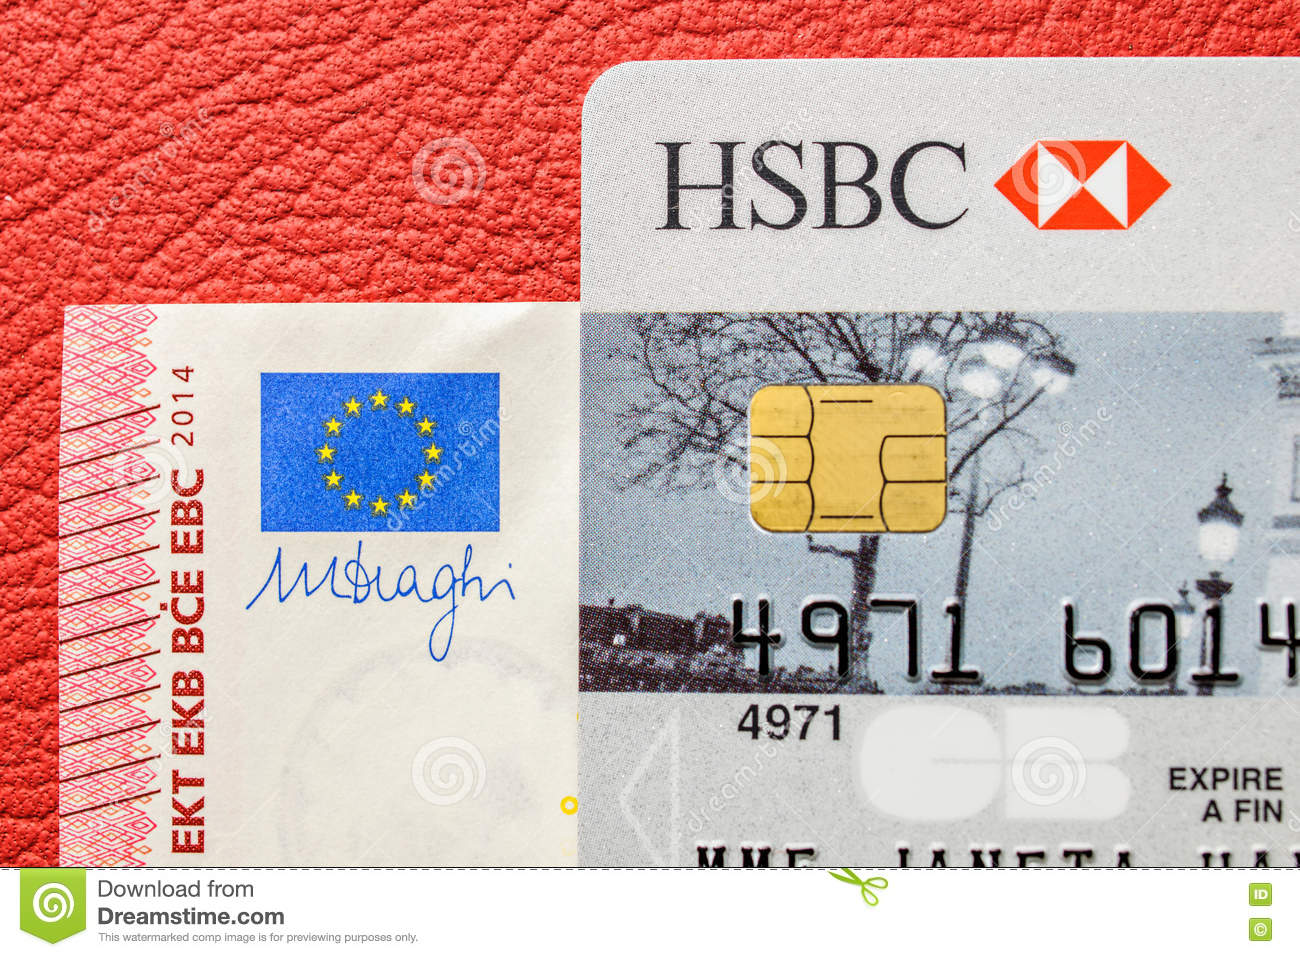 HSBC Card And Ten Euro Bank Note On Leather Upholstery Car Editorial